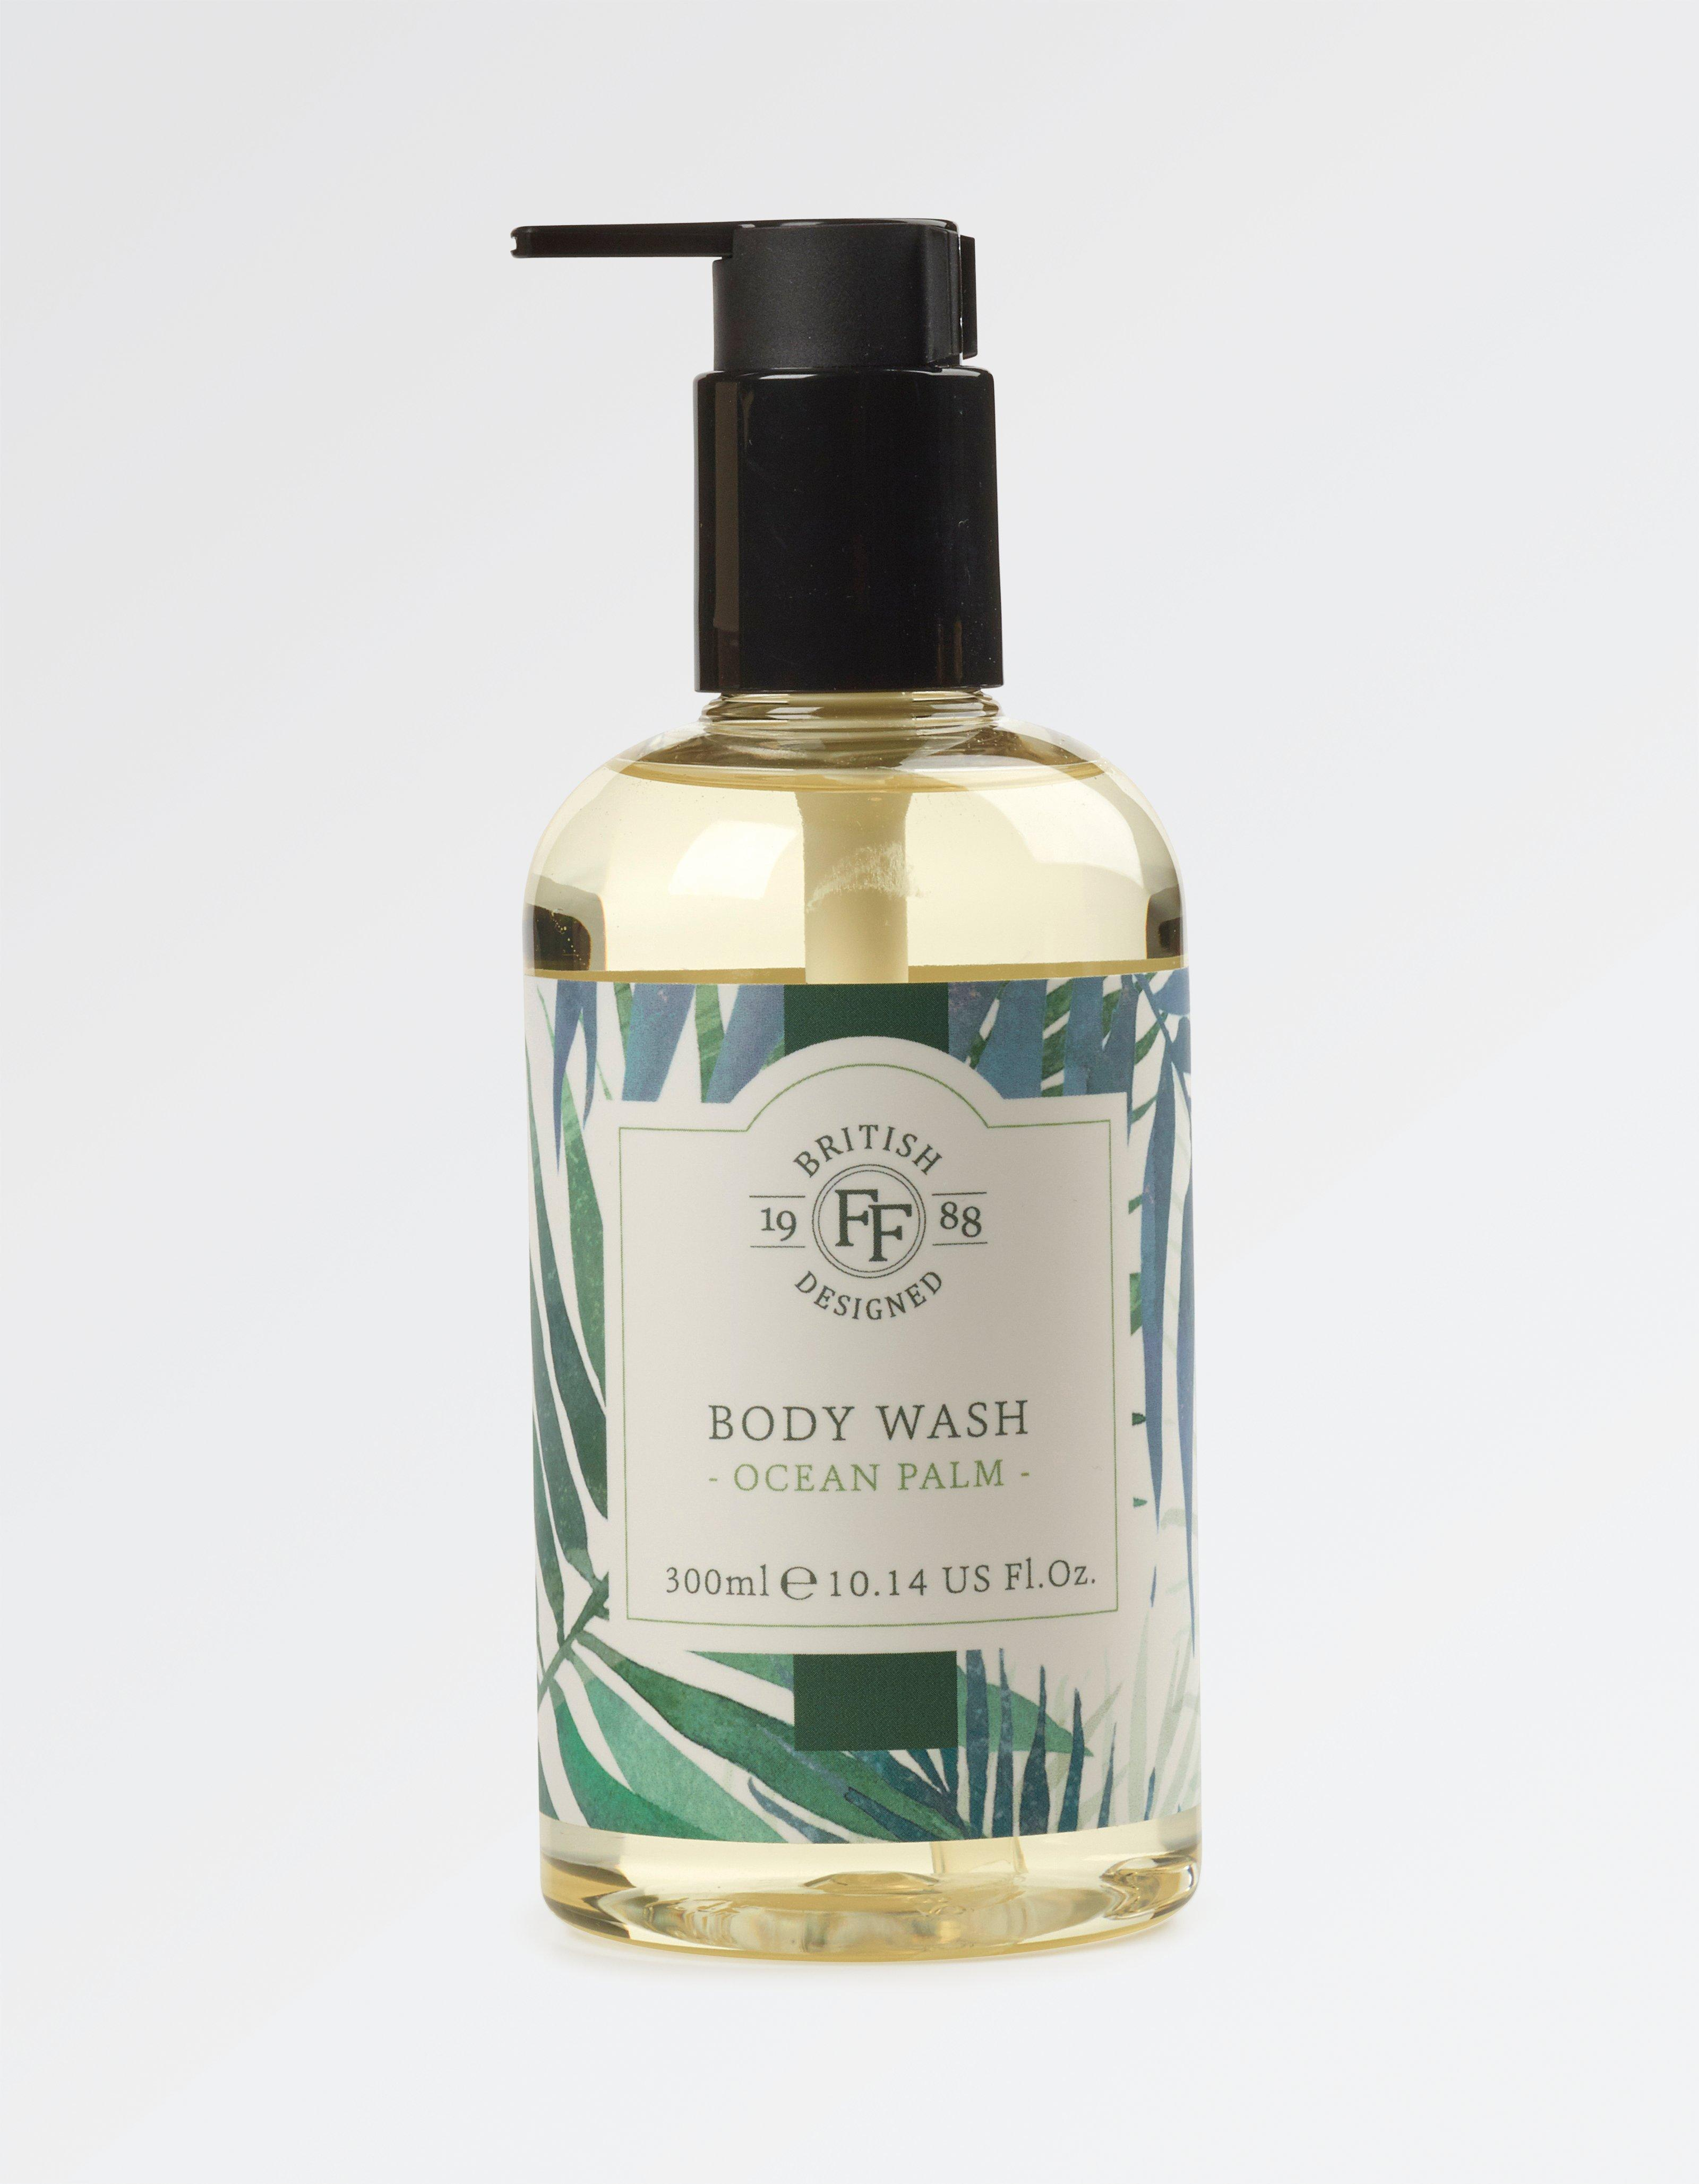 Ocean Palm Body Wash